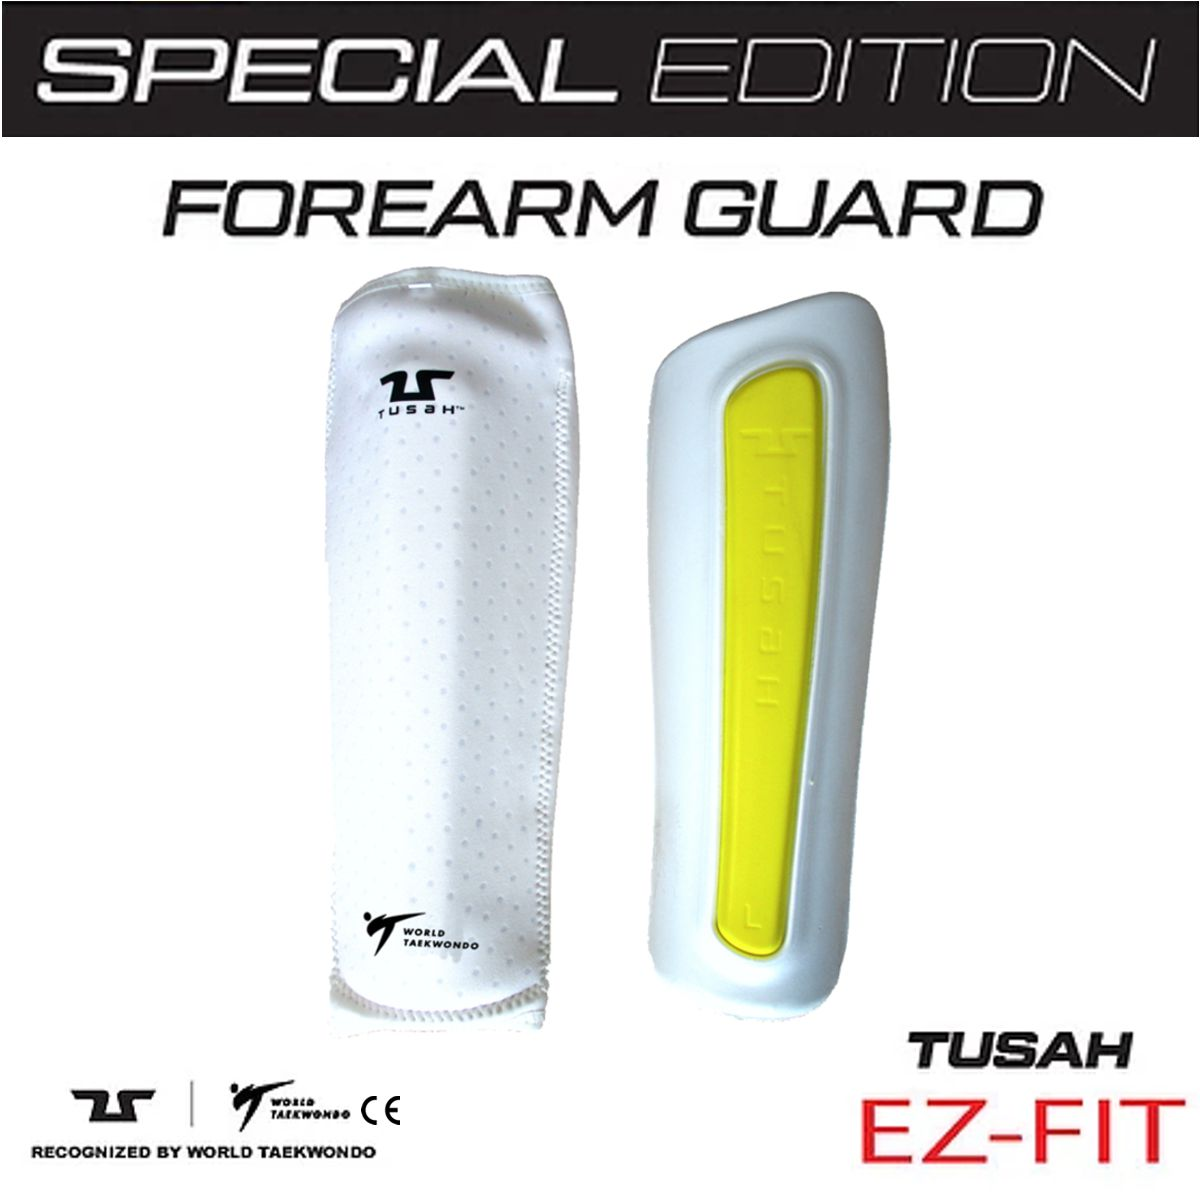 WT Approved Special Edition Forearm